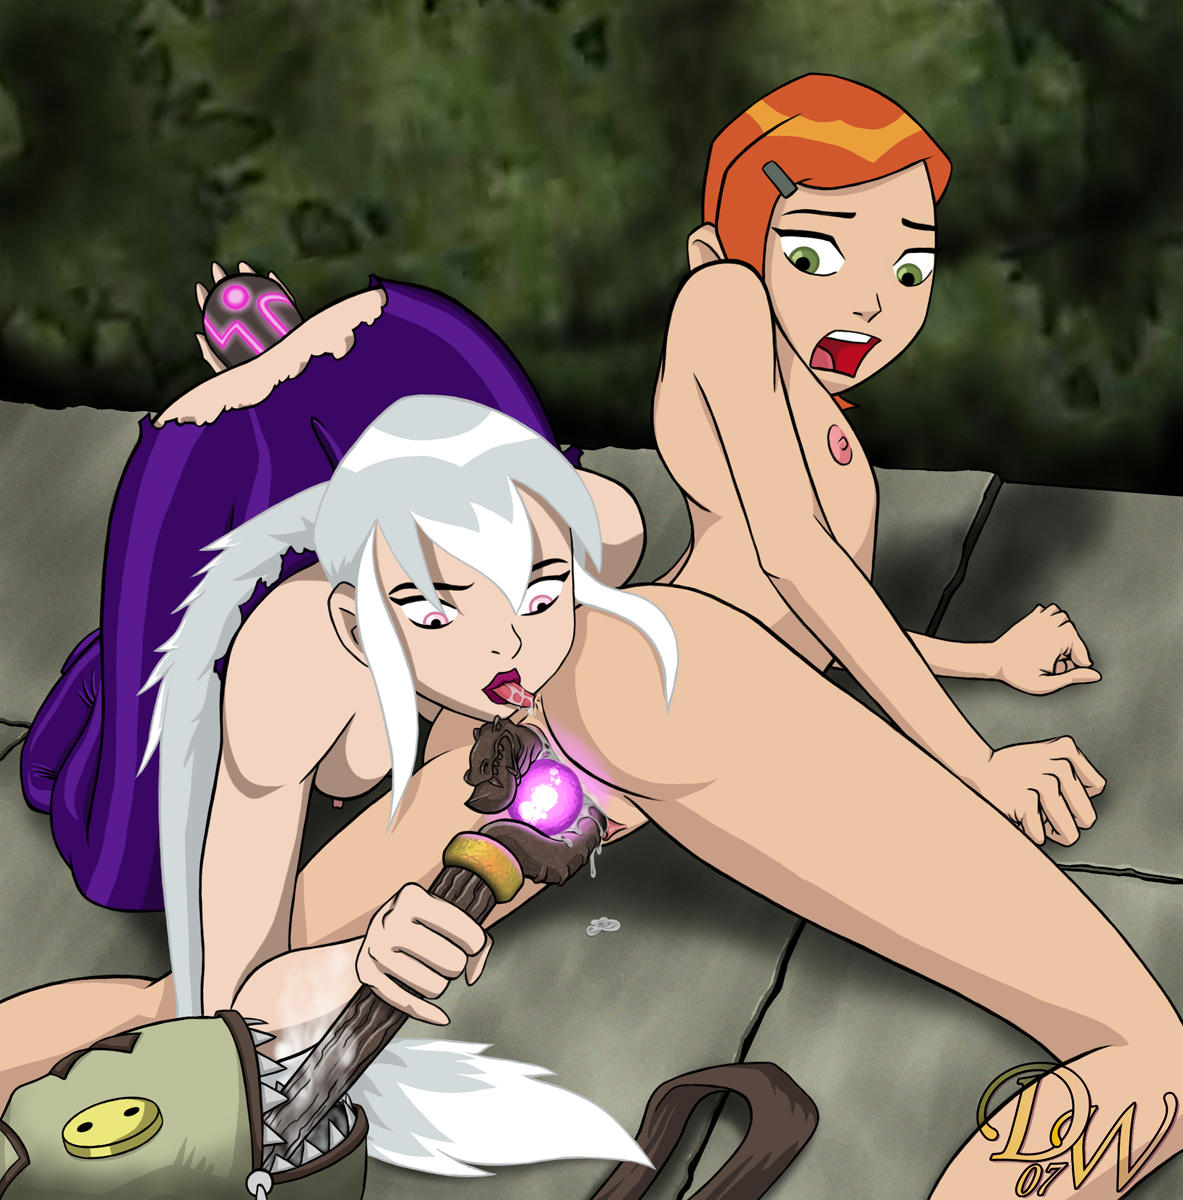 A Wet Dream on Elm Street: Ben 10 Porn 1